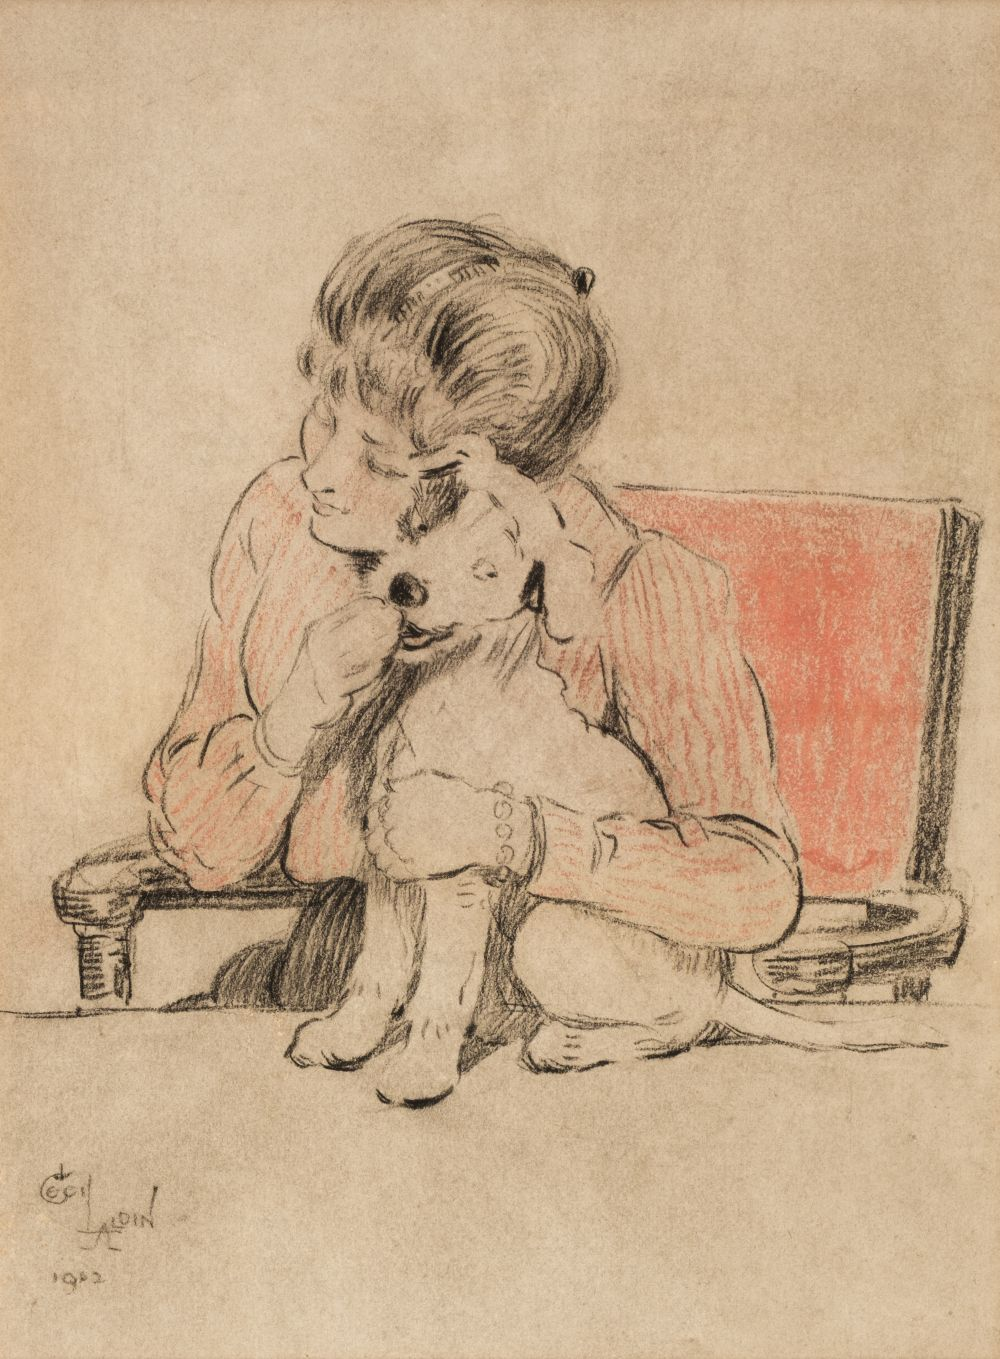 * Aldin (Cecil Charles Windsor, 1870 - 1935). Young Lady cuddling a Terrier, 1902